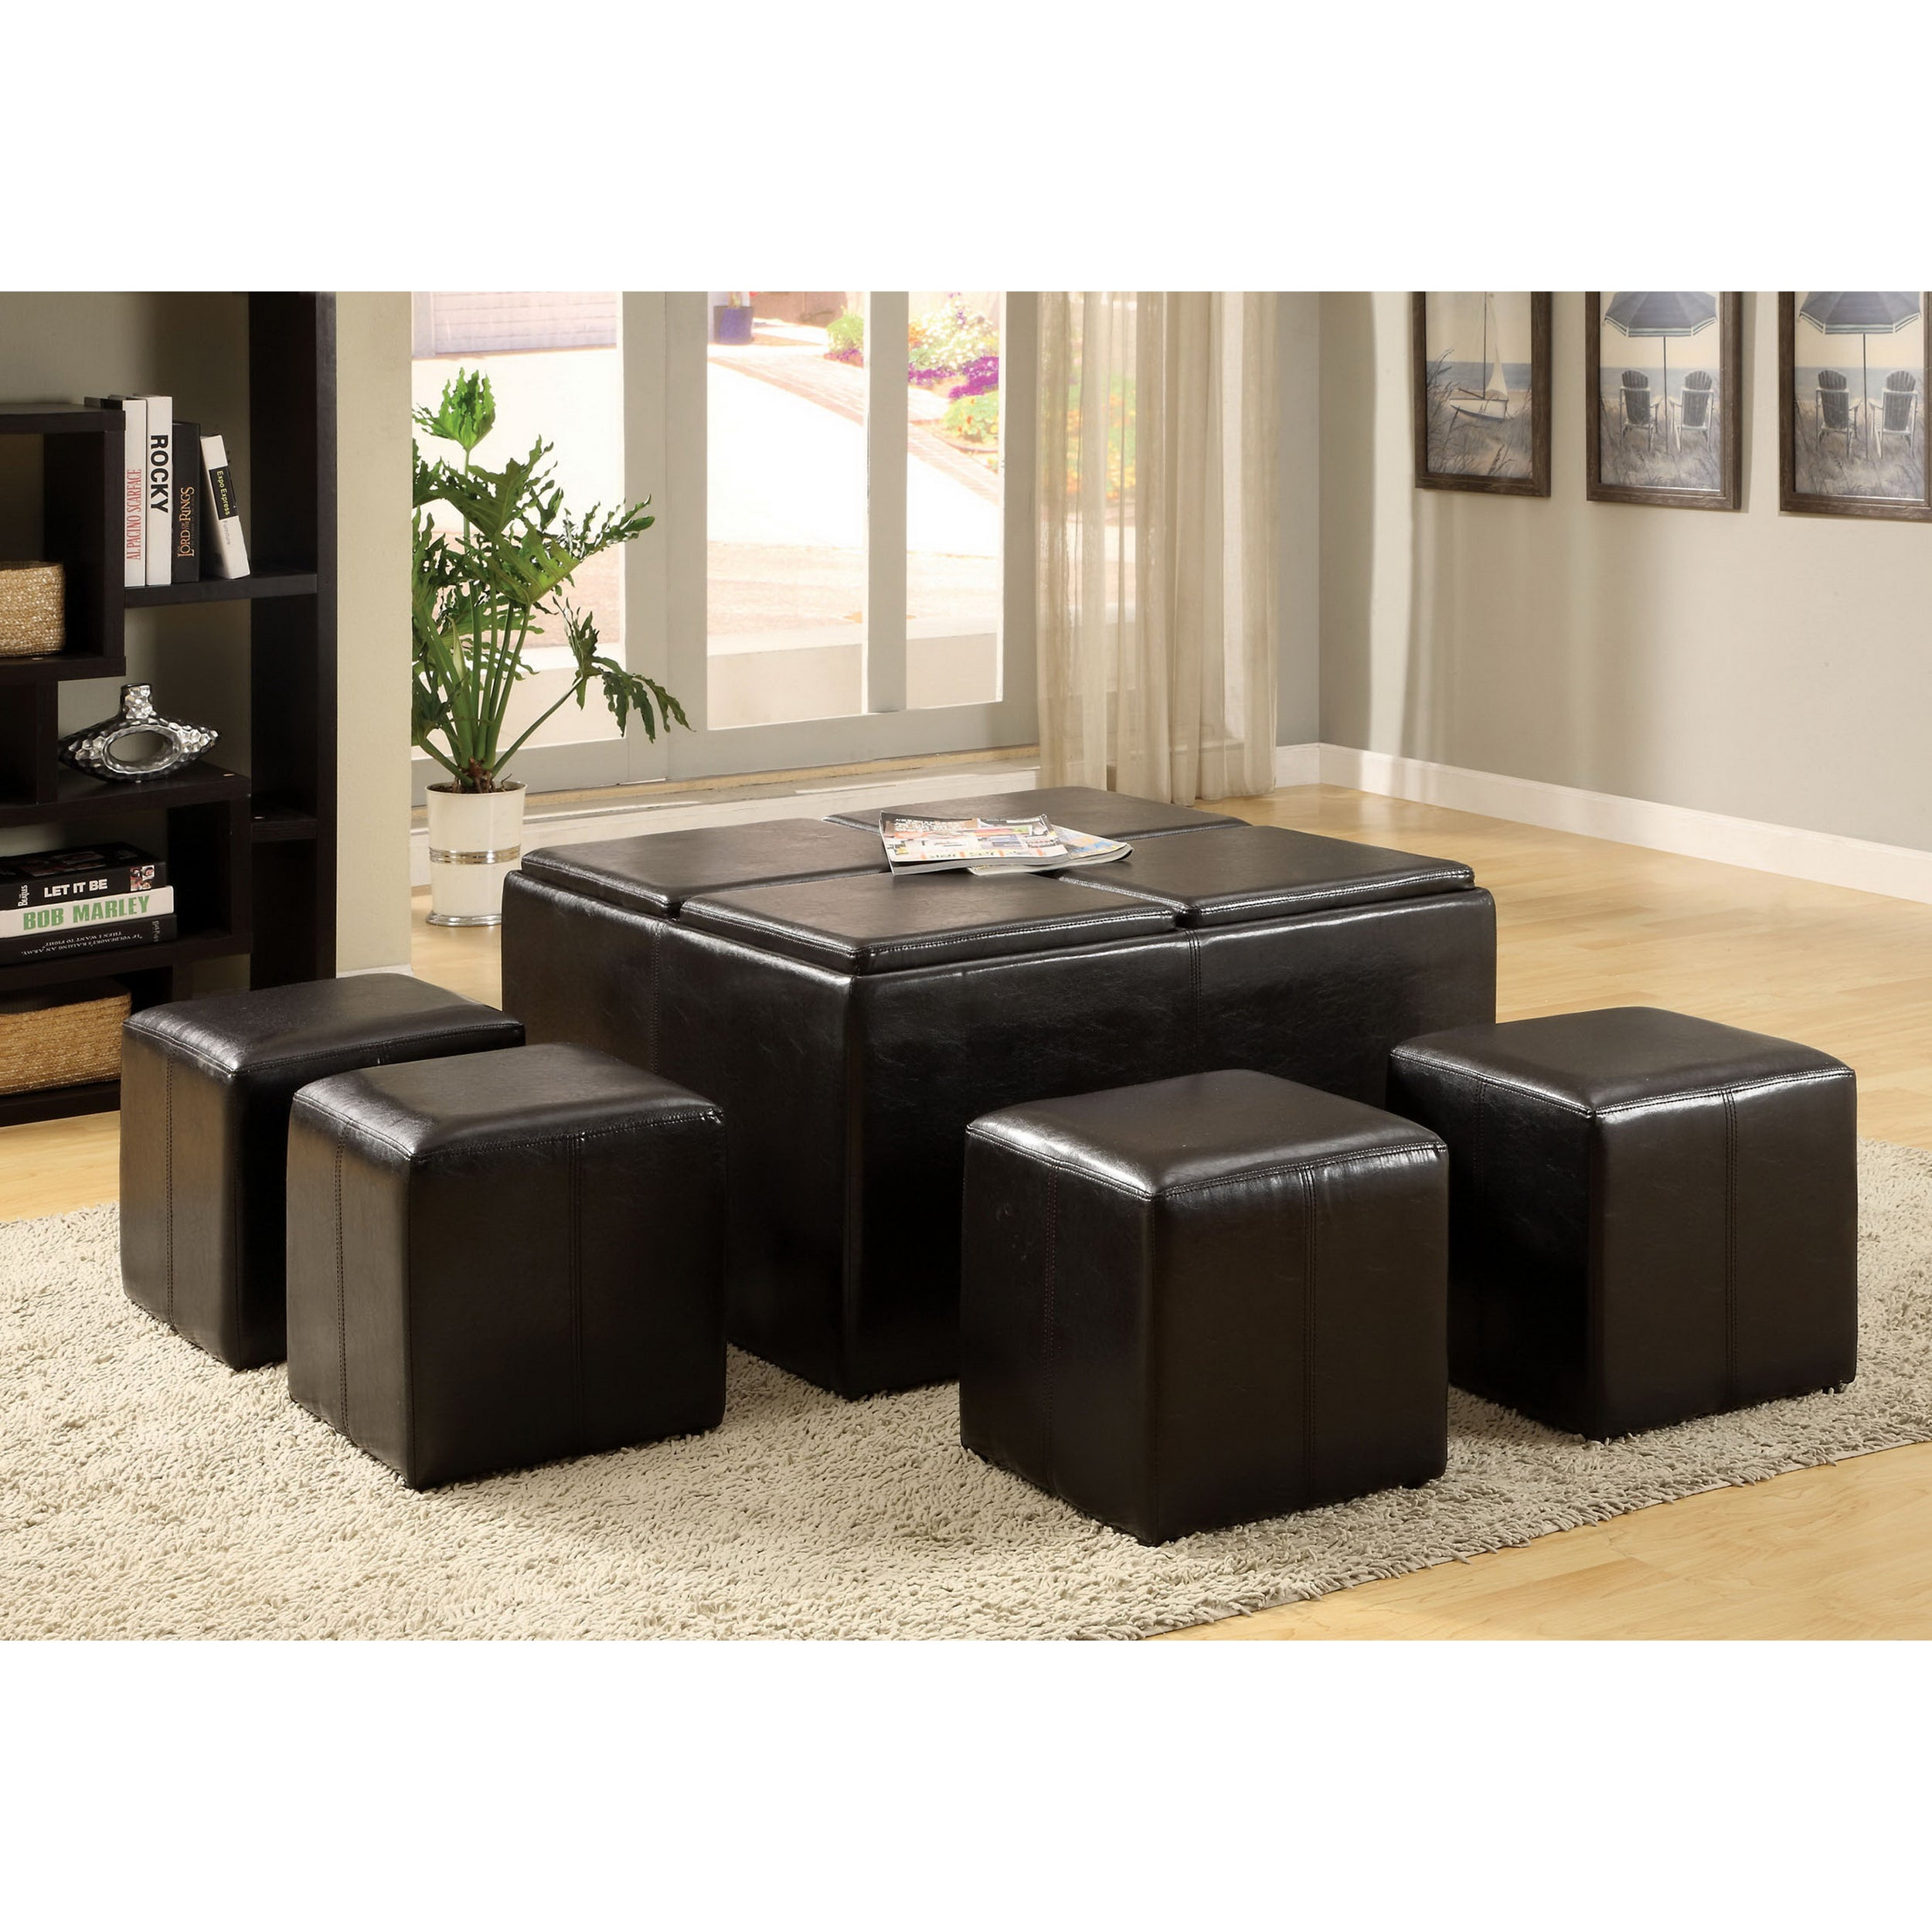 Superior Shop Furniture Of America Miller Storage Ottoman With Four Nesting Stools  And Serving Trays   On Sale   Free Shipping Today   Overstock.com   6545997